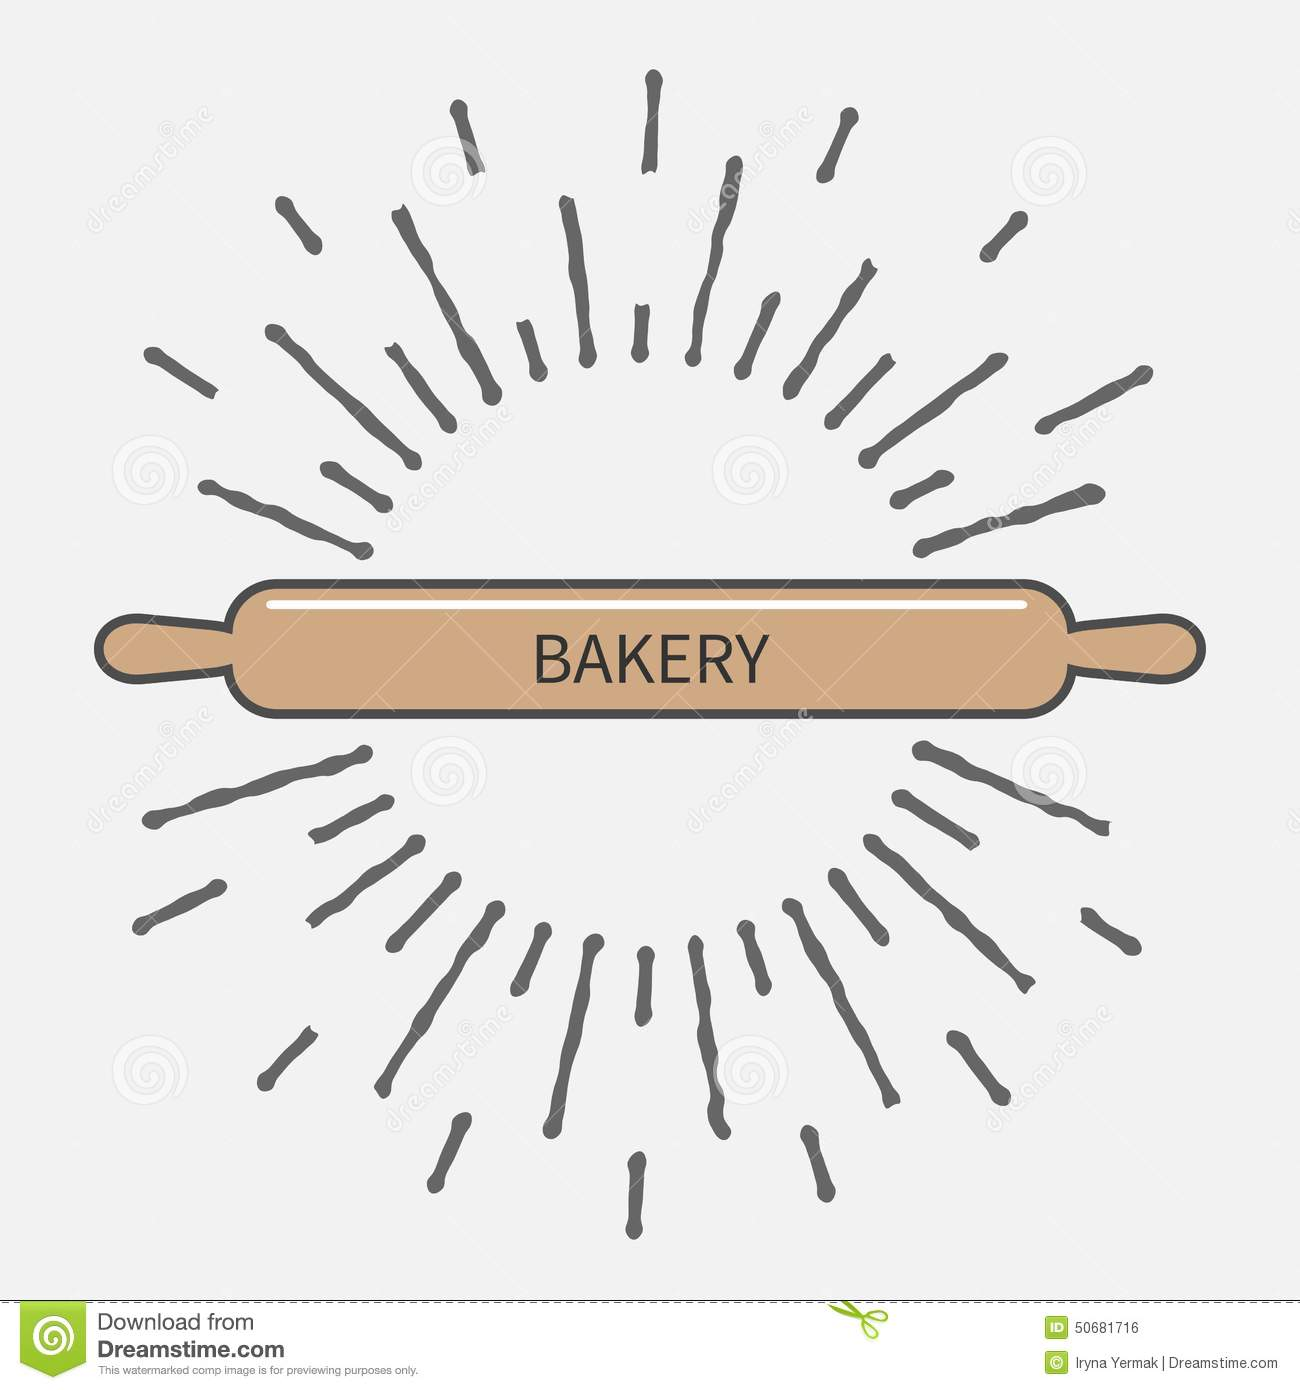 Baking Tools Vector Bakery Tool And Equipment Vector And Icon Stock Vector  Image